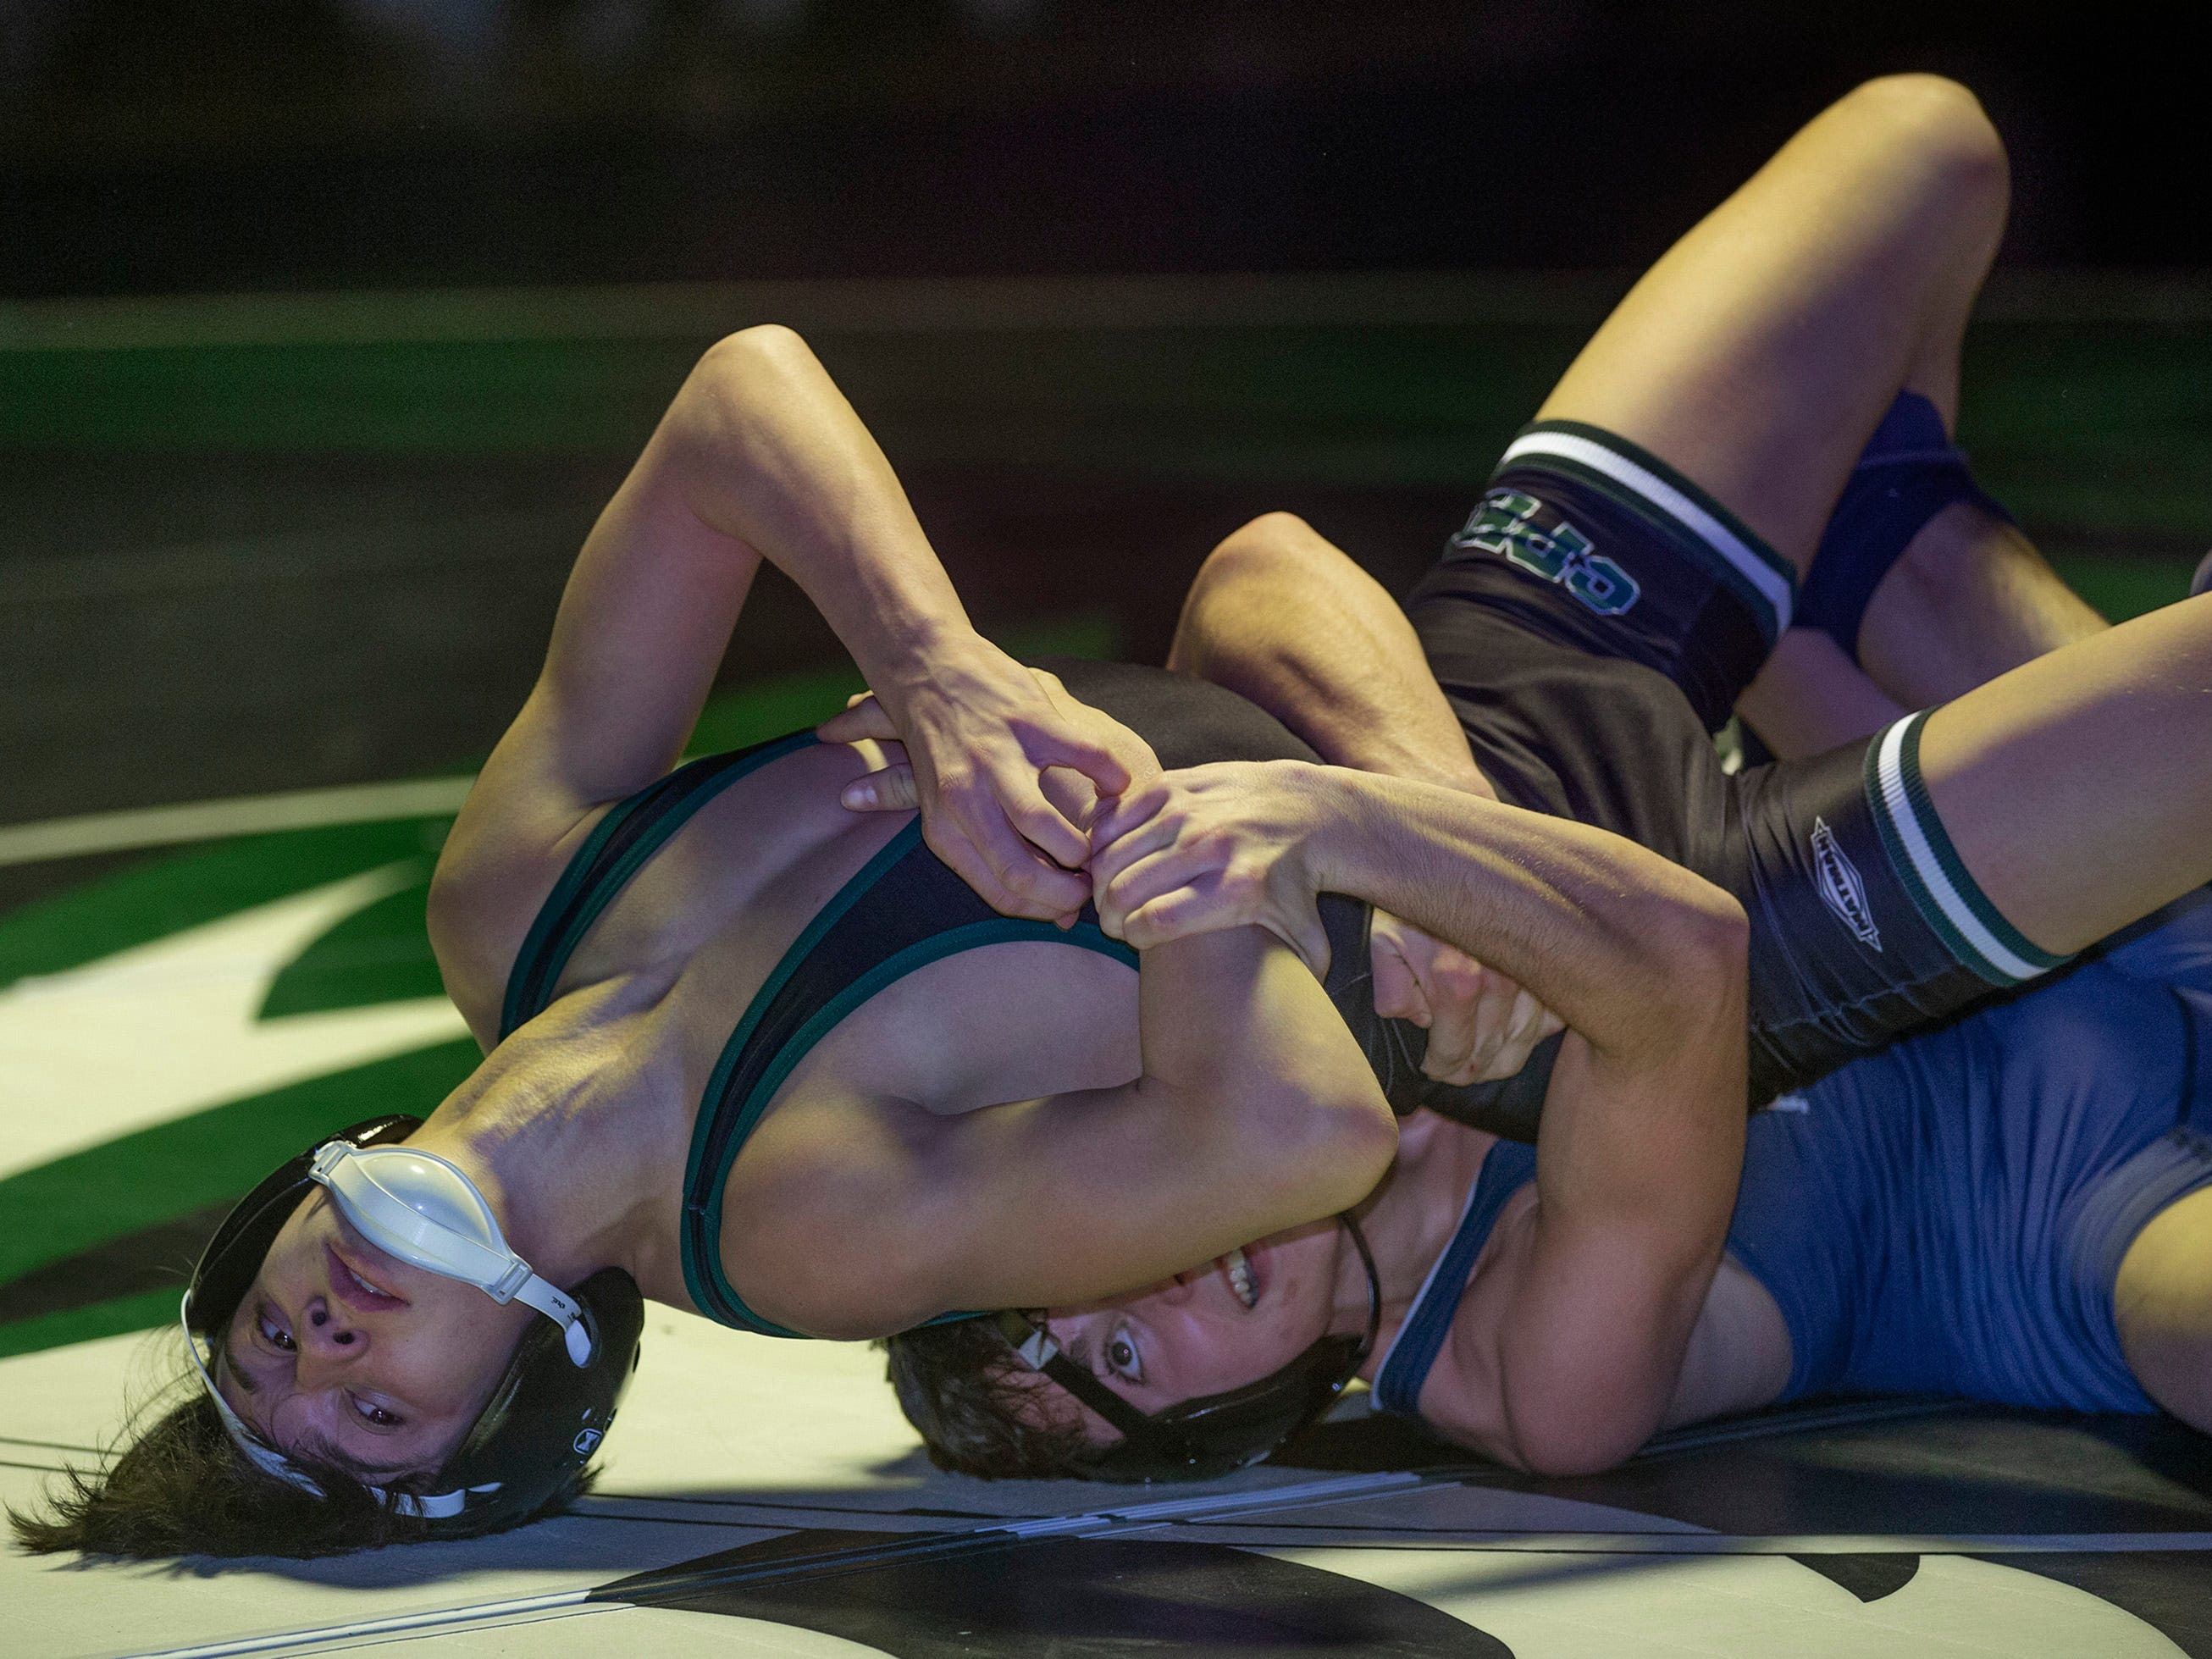 Howell Wrestling edges out South Plainfield in South Plainfield NJ on January 17, 2019.